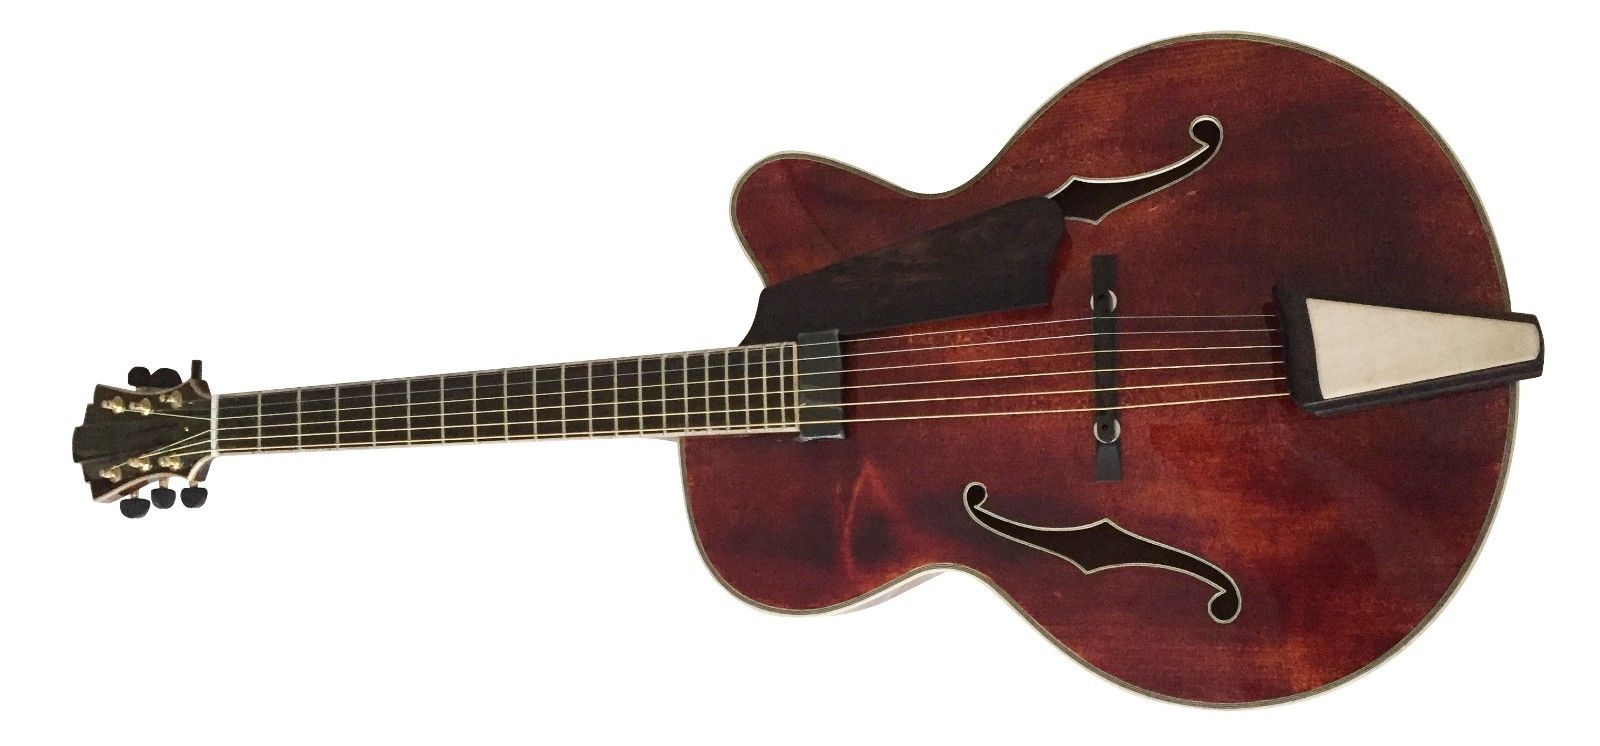 16inch archaizeed color handmade solid wood jazz guitar